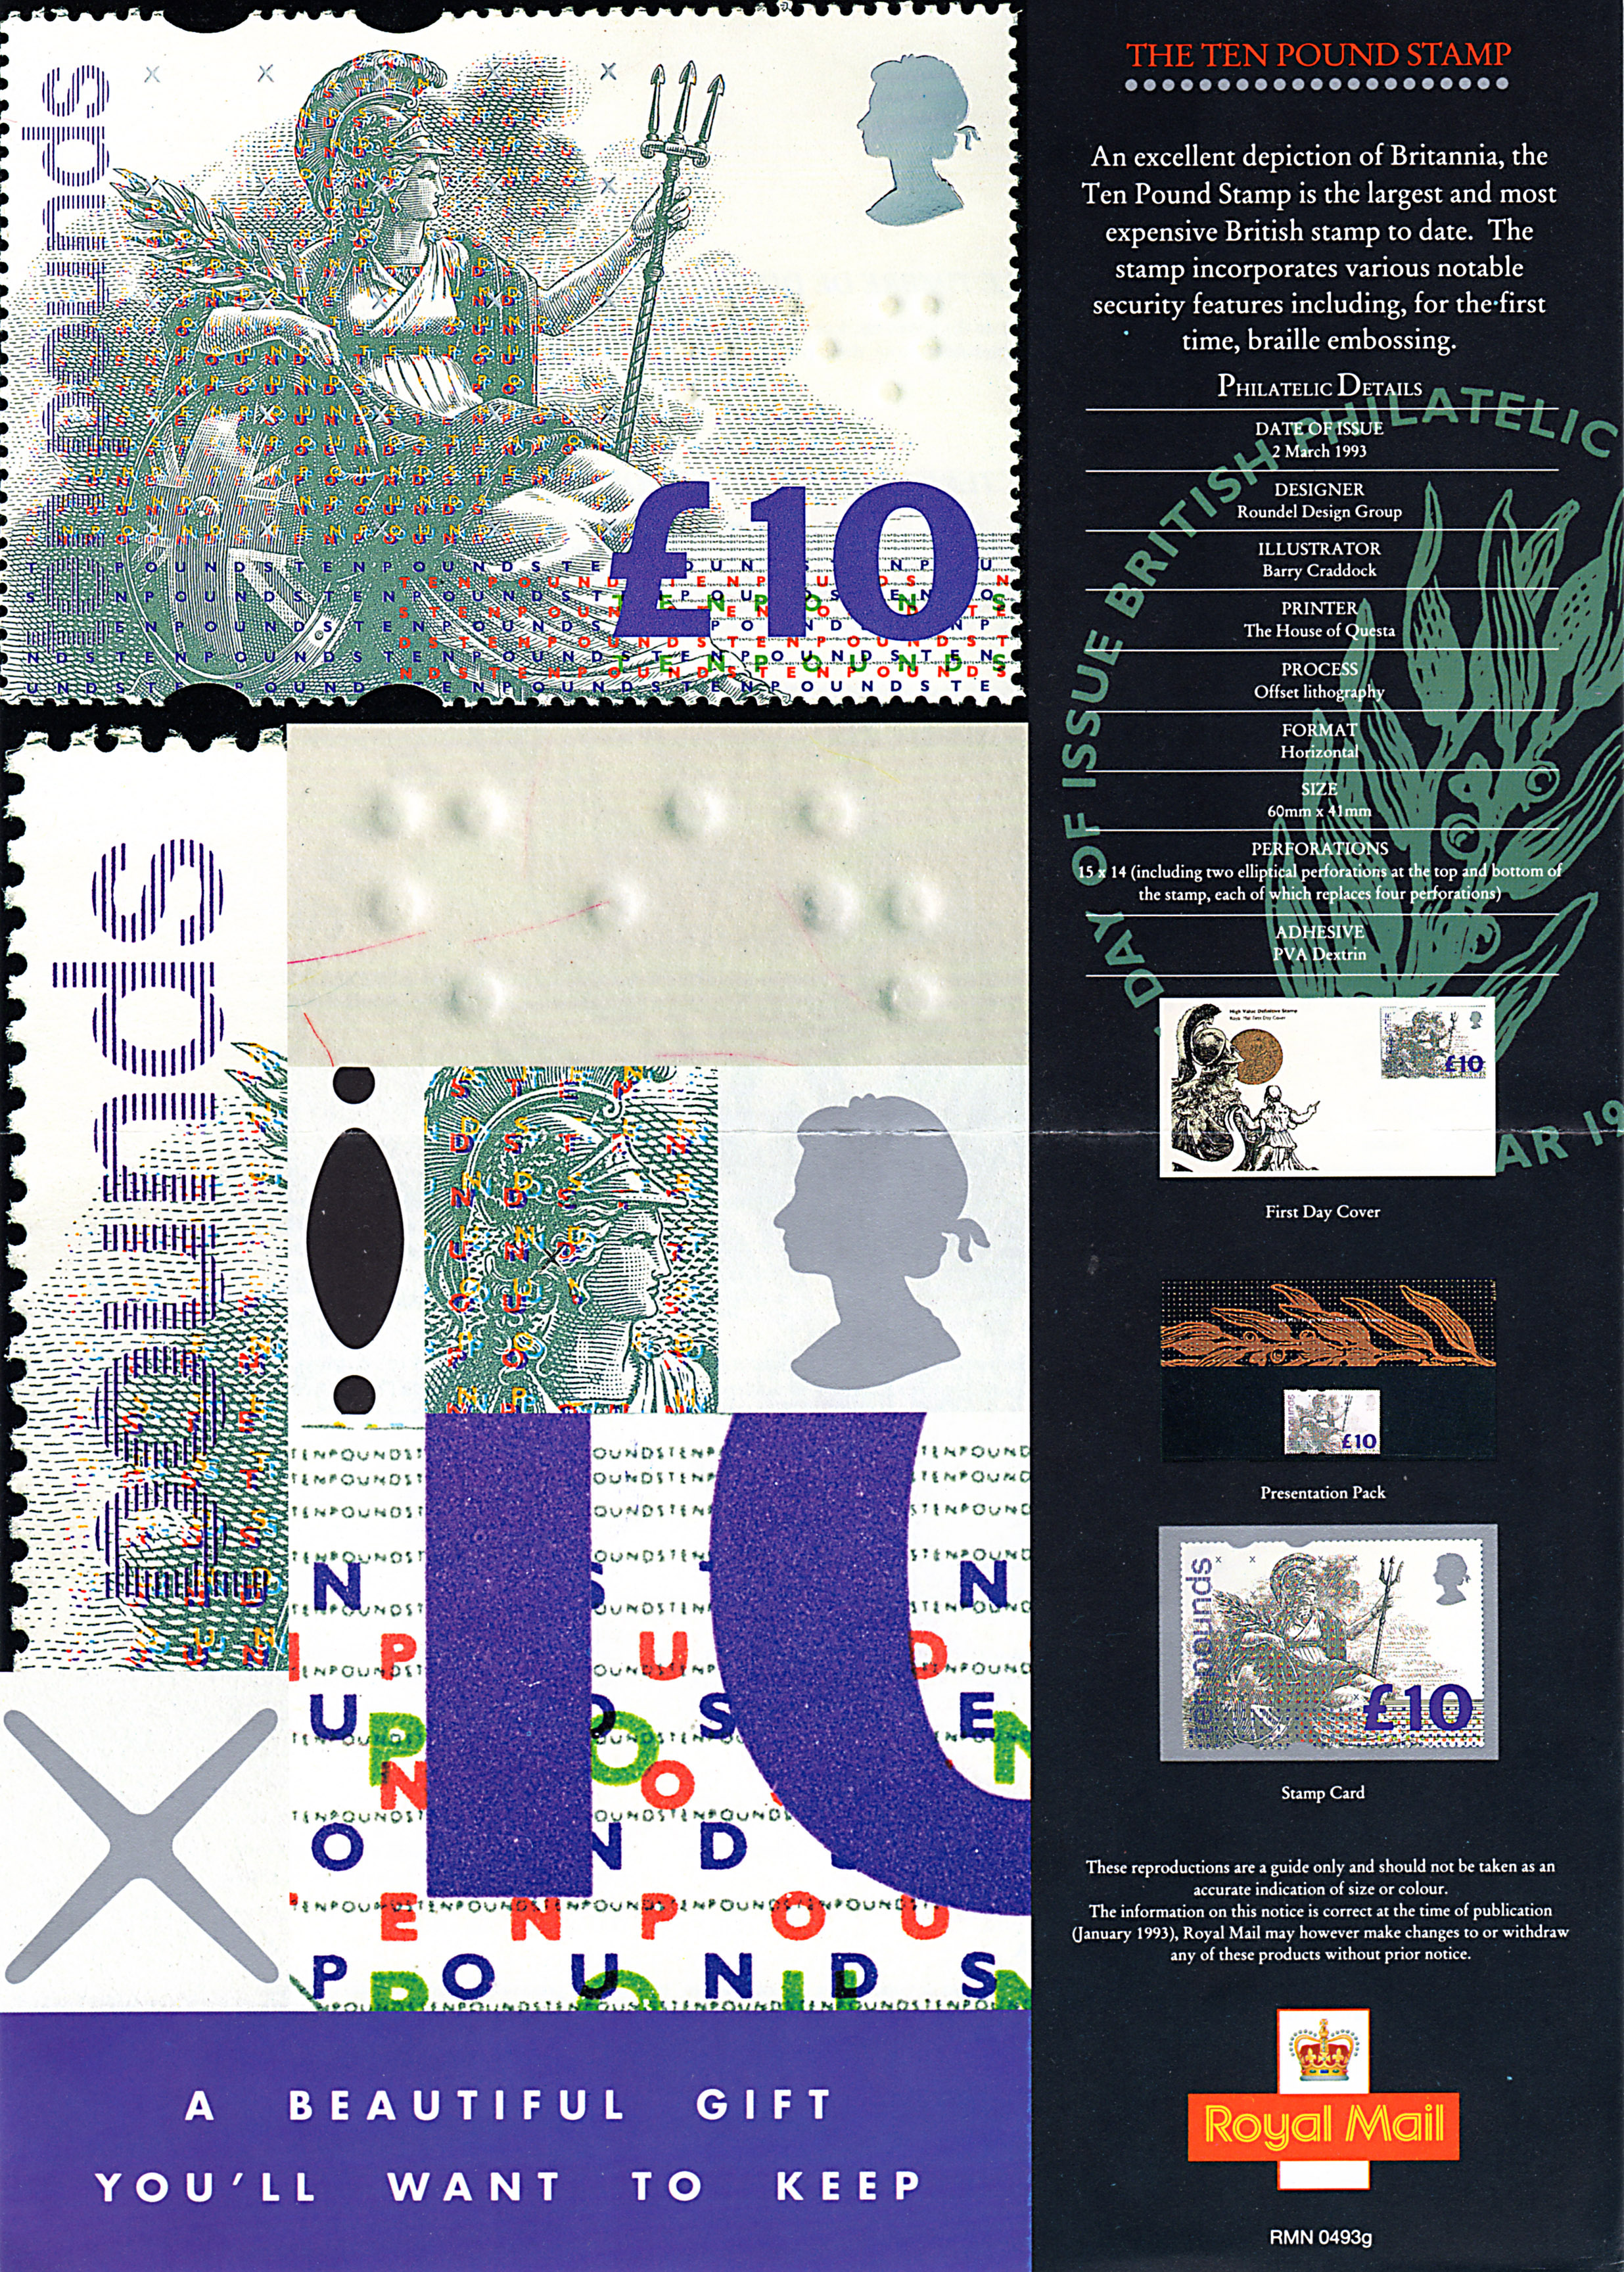 Post office poster advertises britain 39 s highest denomination stamp - Great britain post office ...